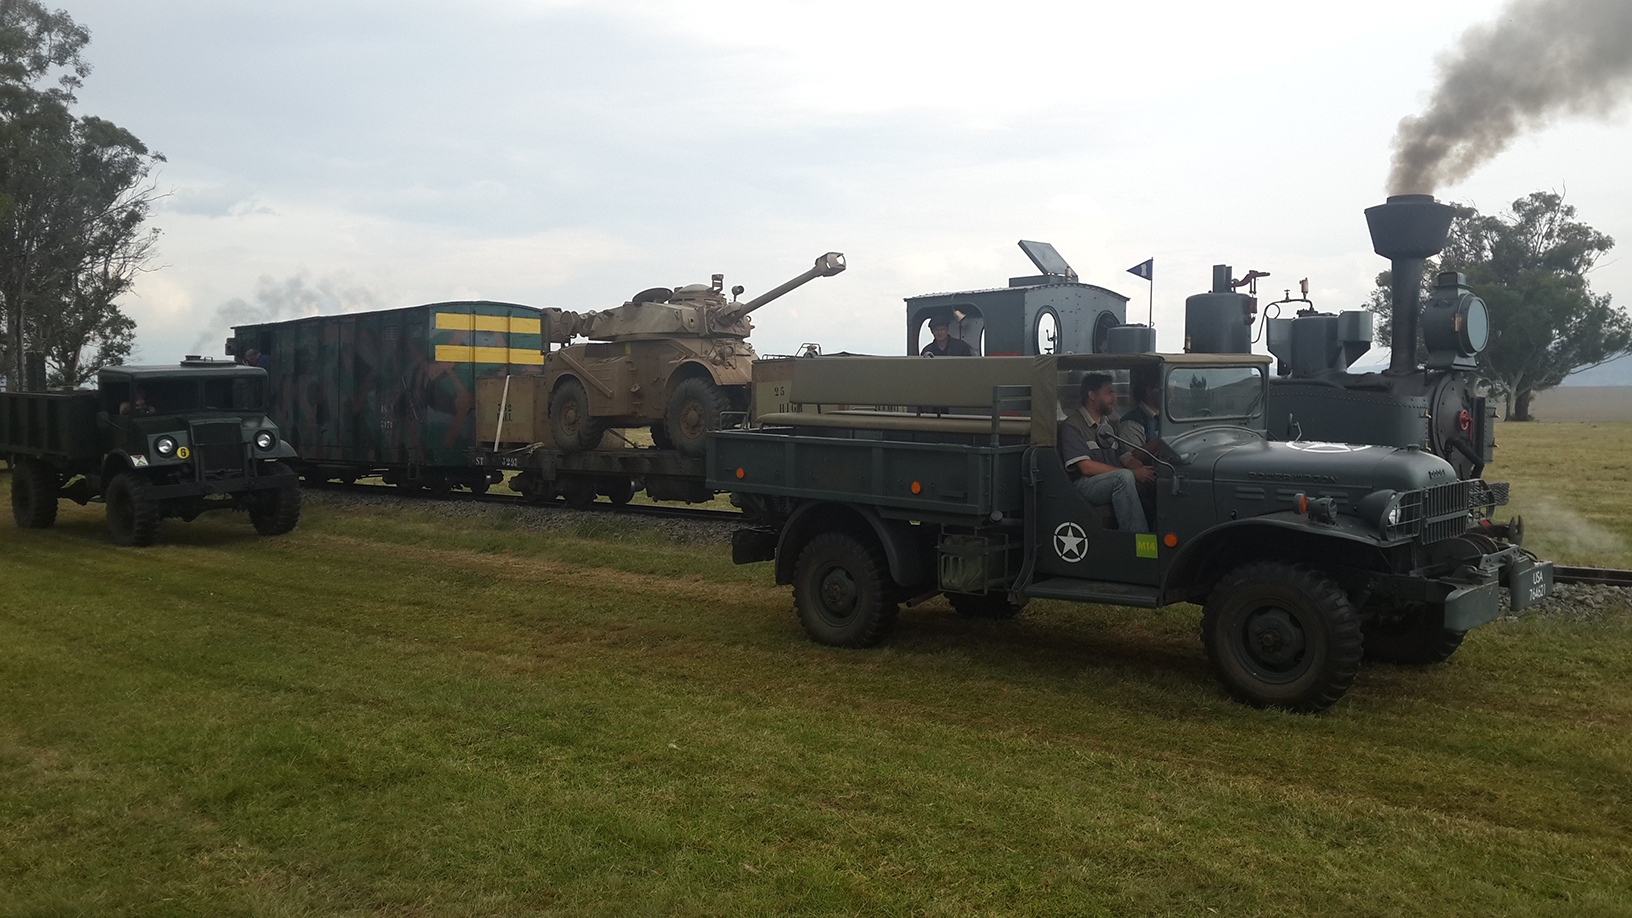 The Dodge Power Wagon passes by as the Feldbahn awaits its turn Picture by Dave Richardson